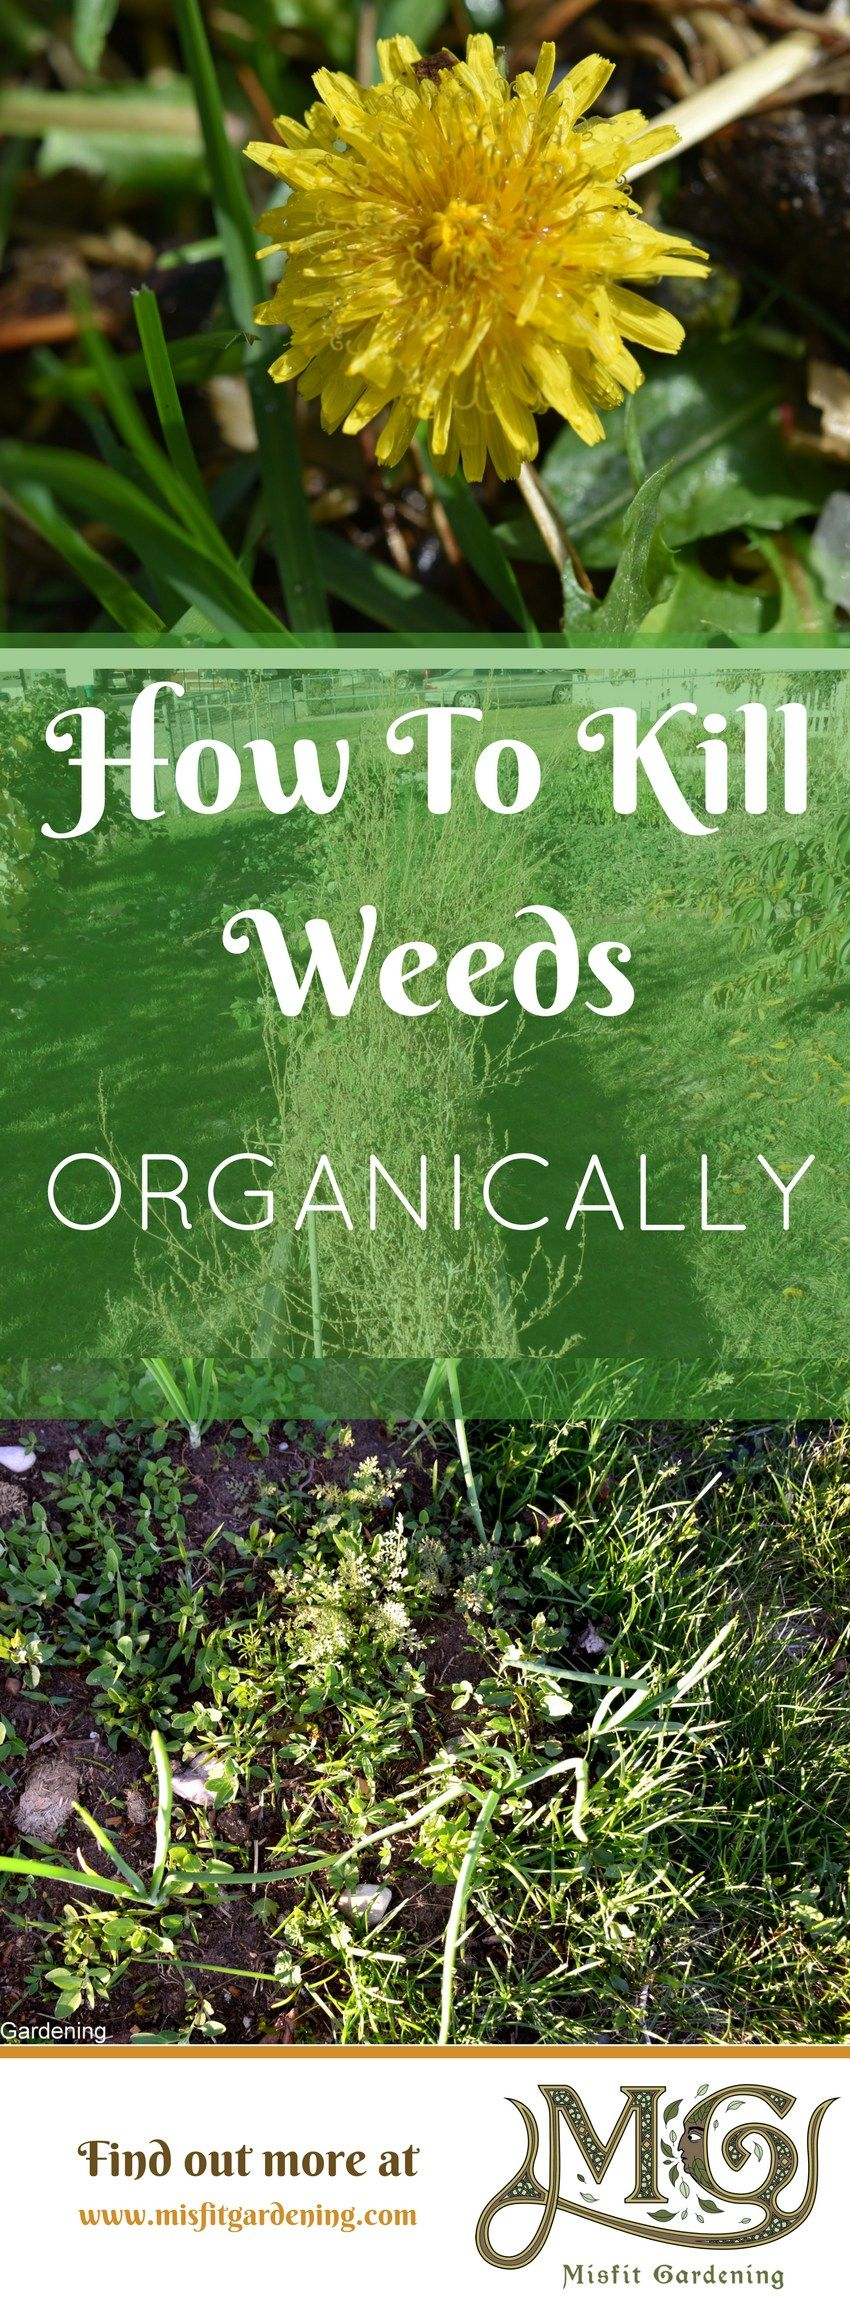 How to kill weeds organically my best frugal method frugal